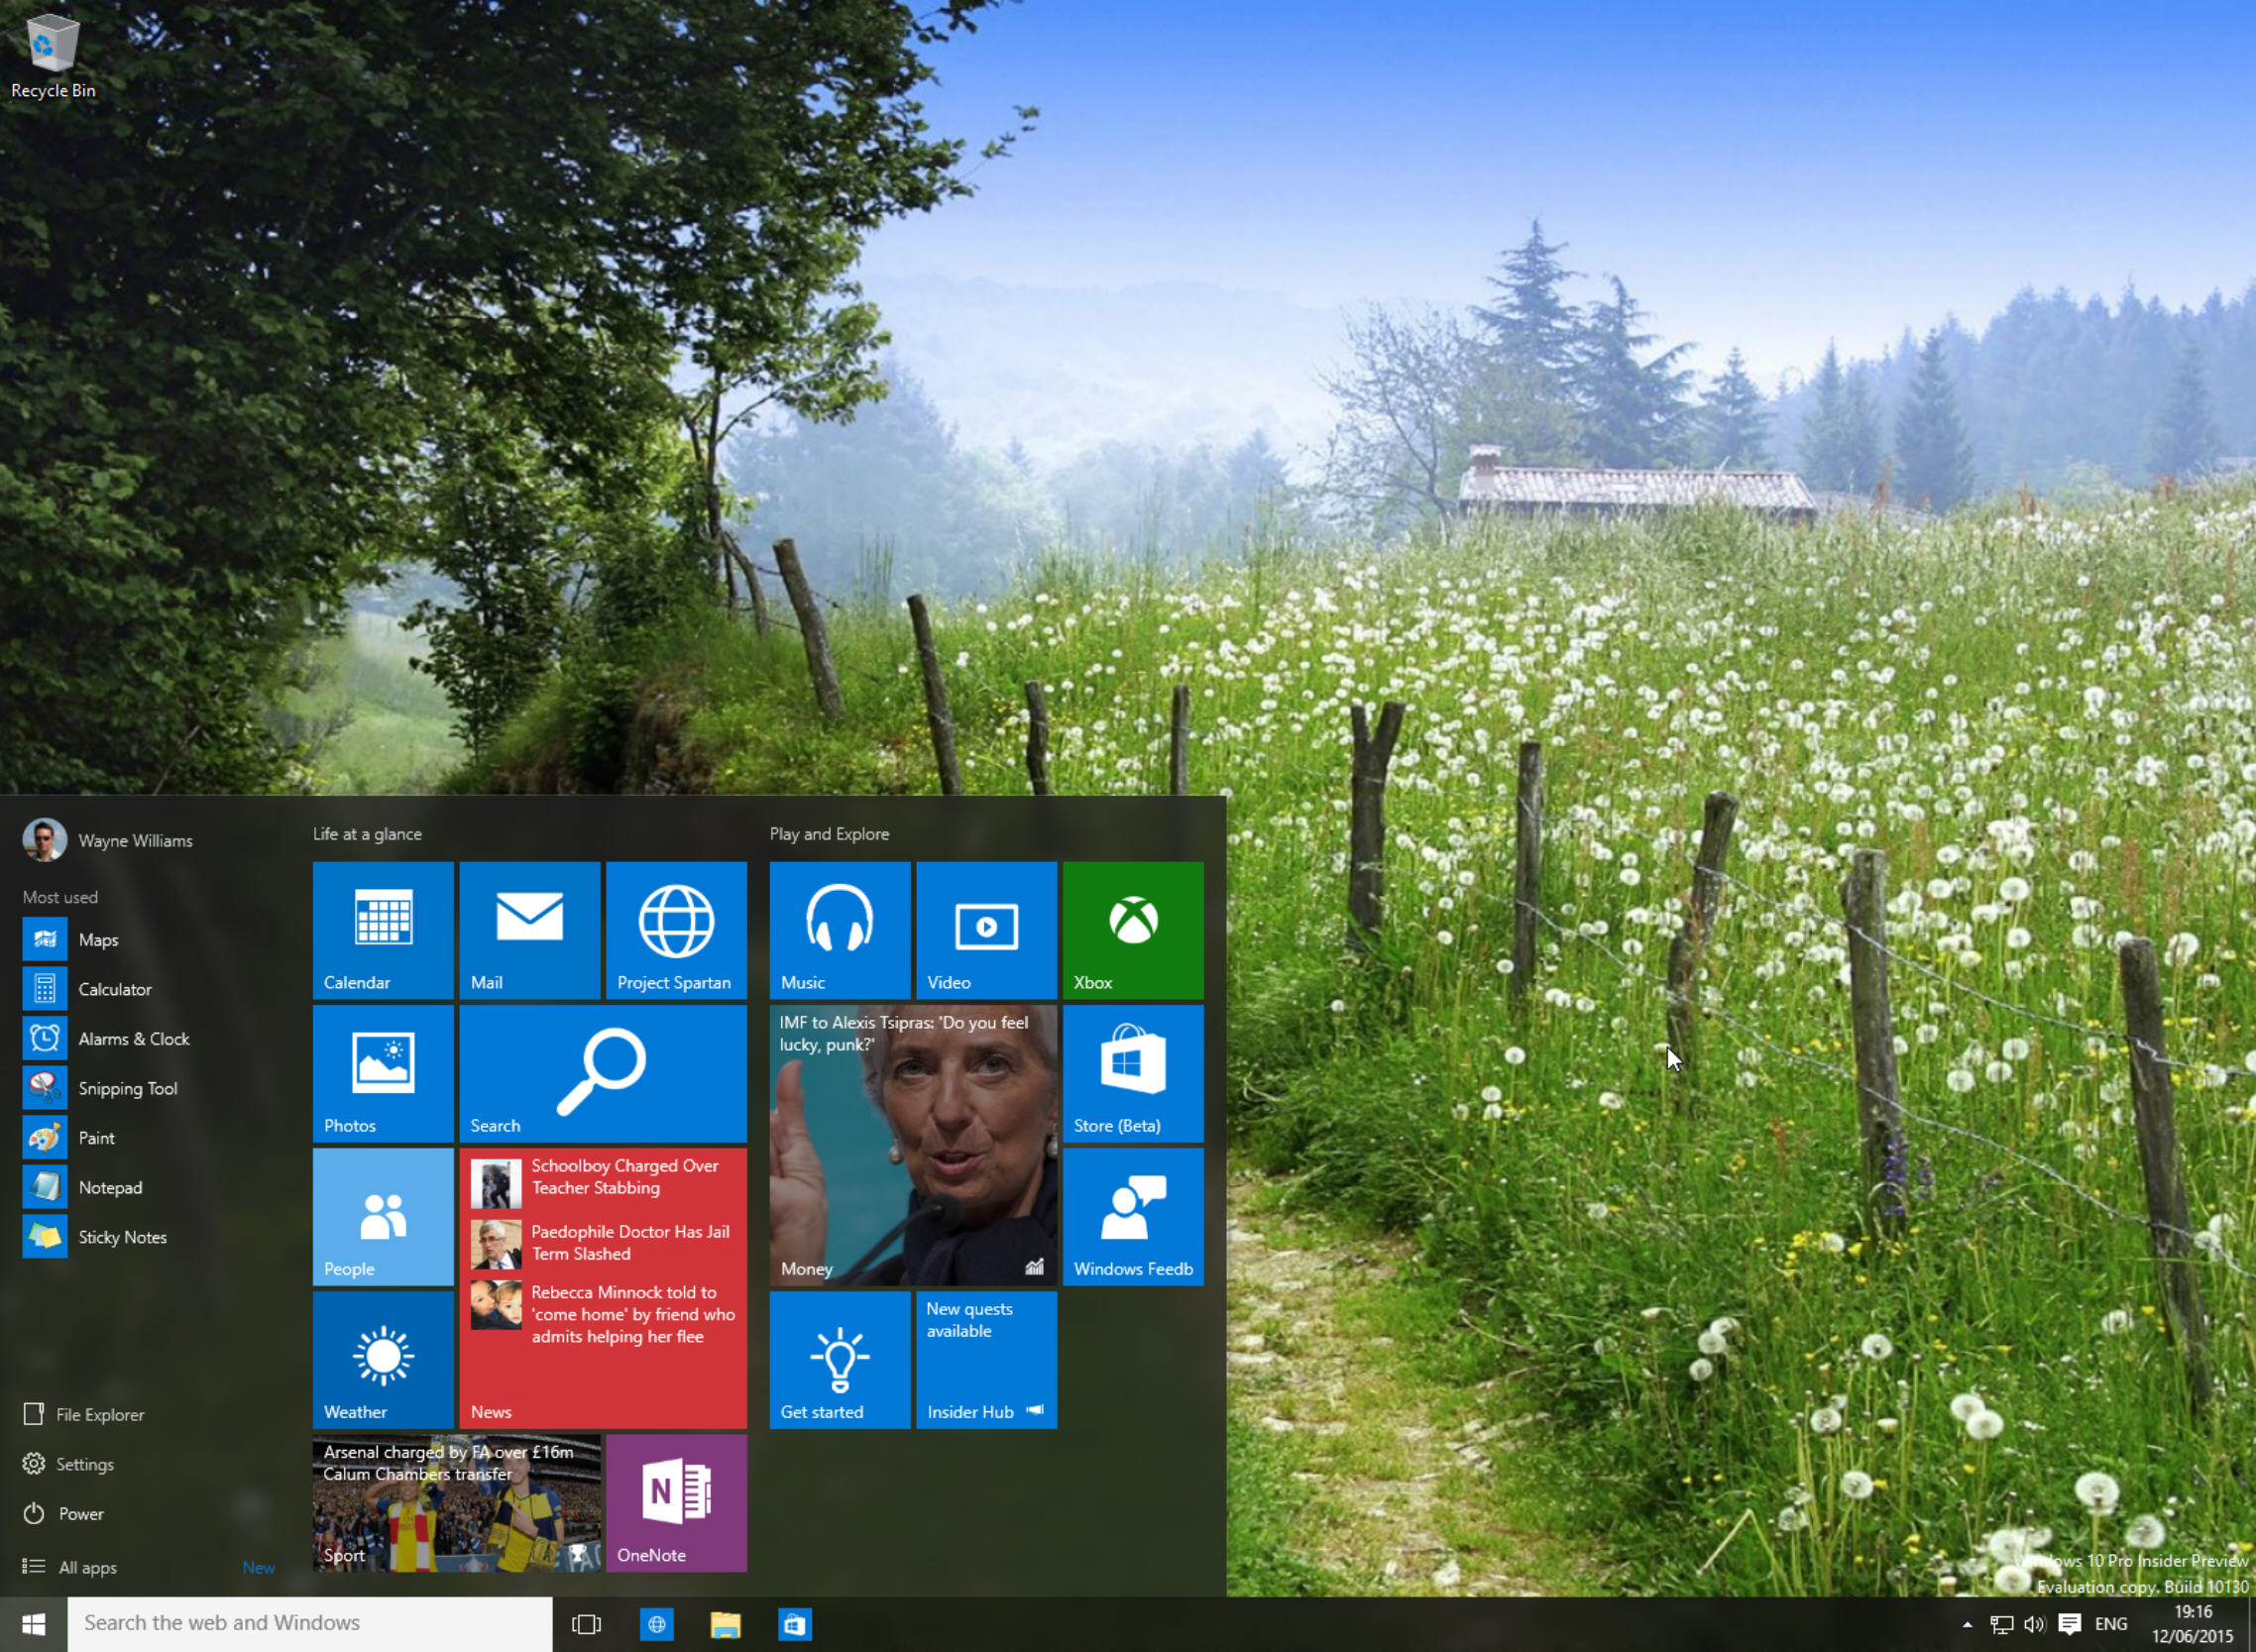 Windows 10 Insider Preview Build 10130 now available to download on